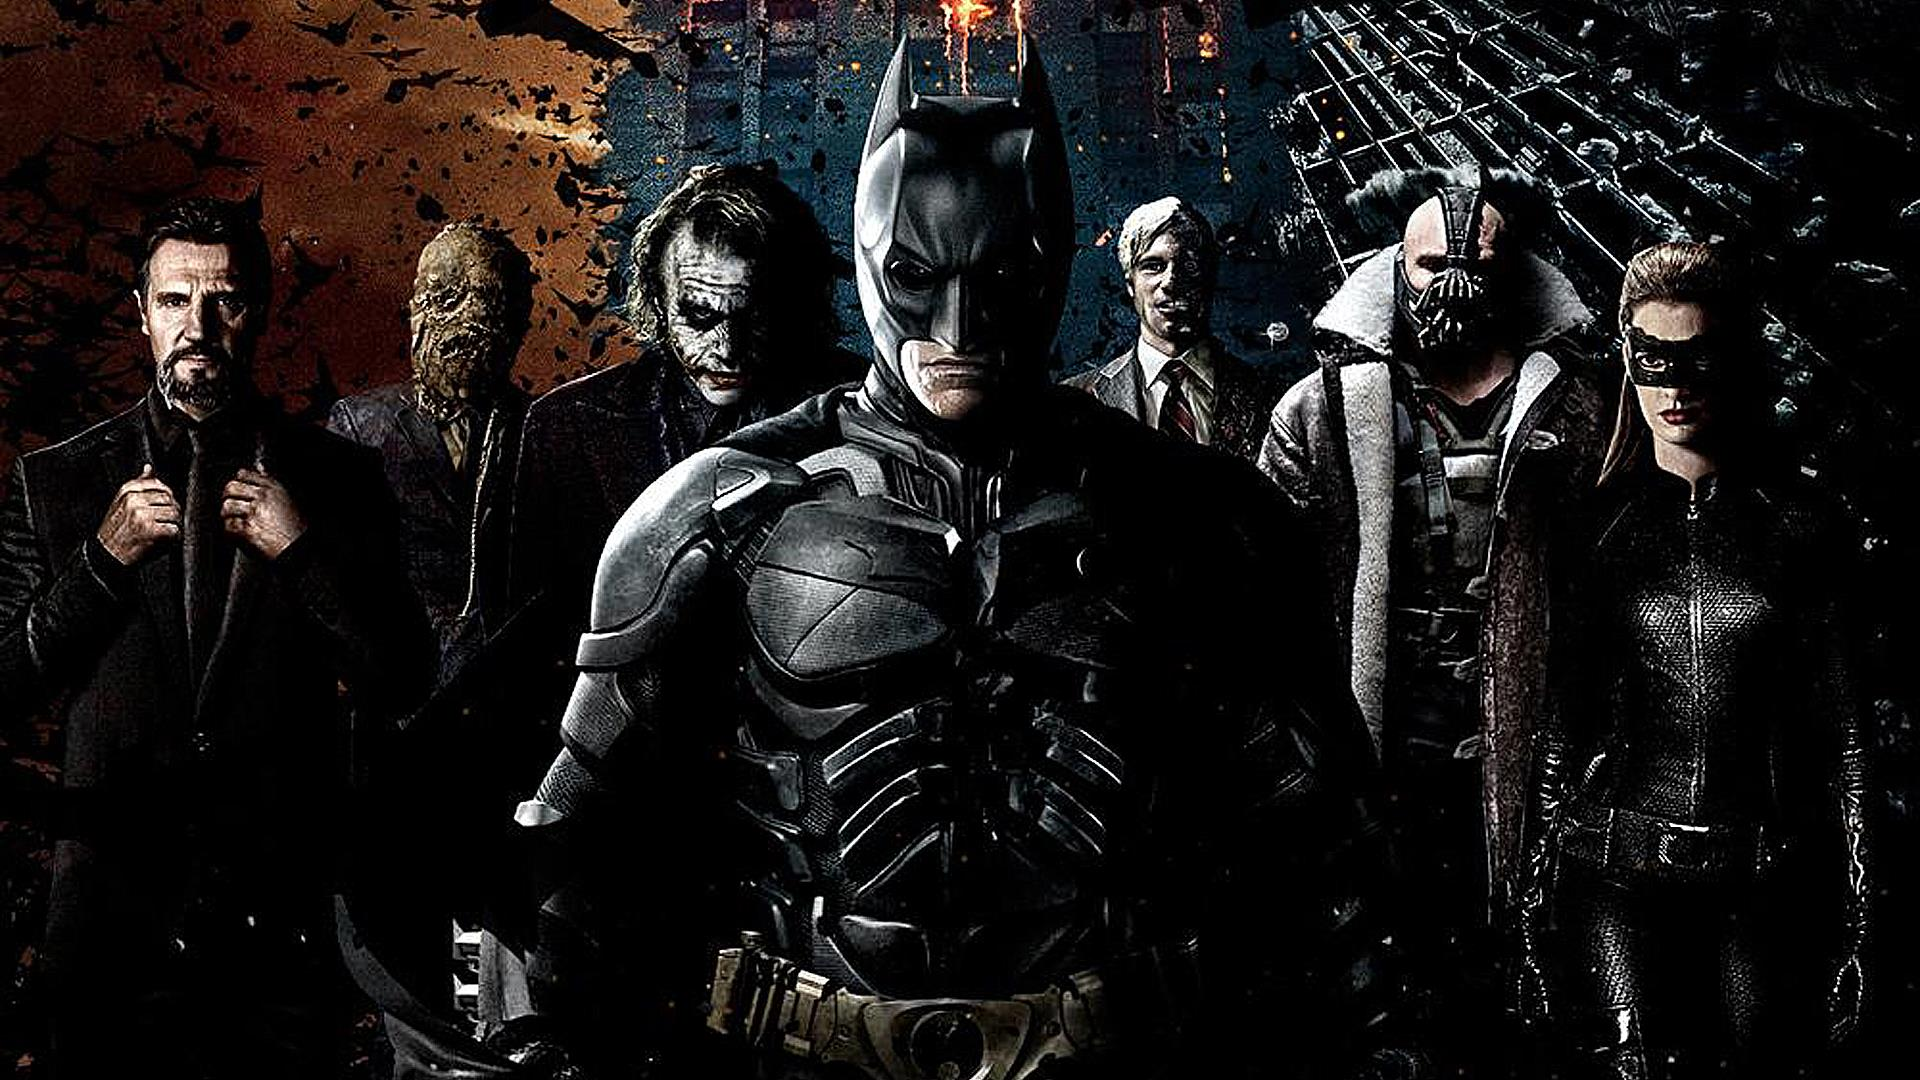 The Dark Knight Rises Computer Wallpapers Desktop Backgrounds 1920x1080